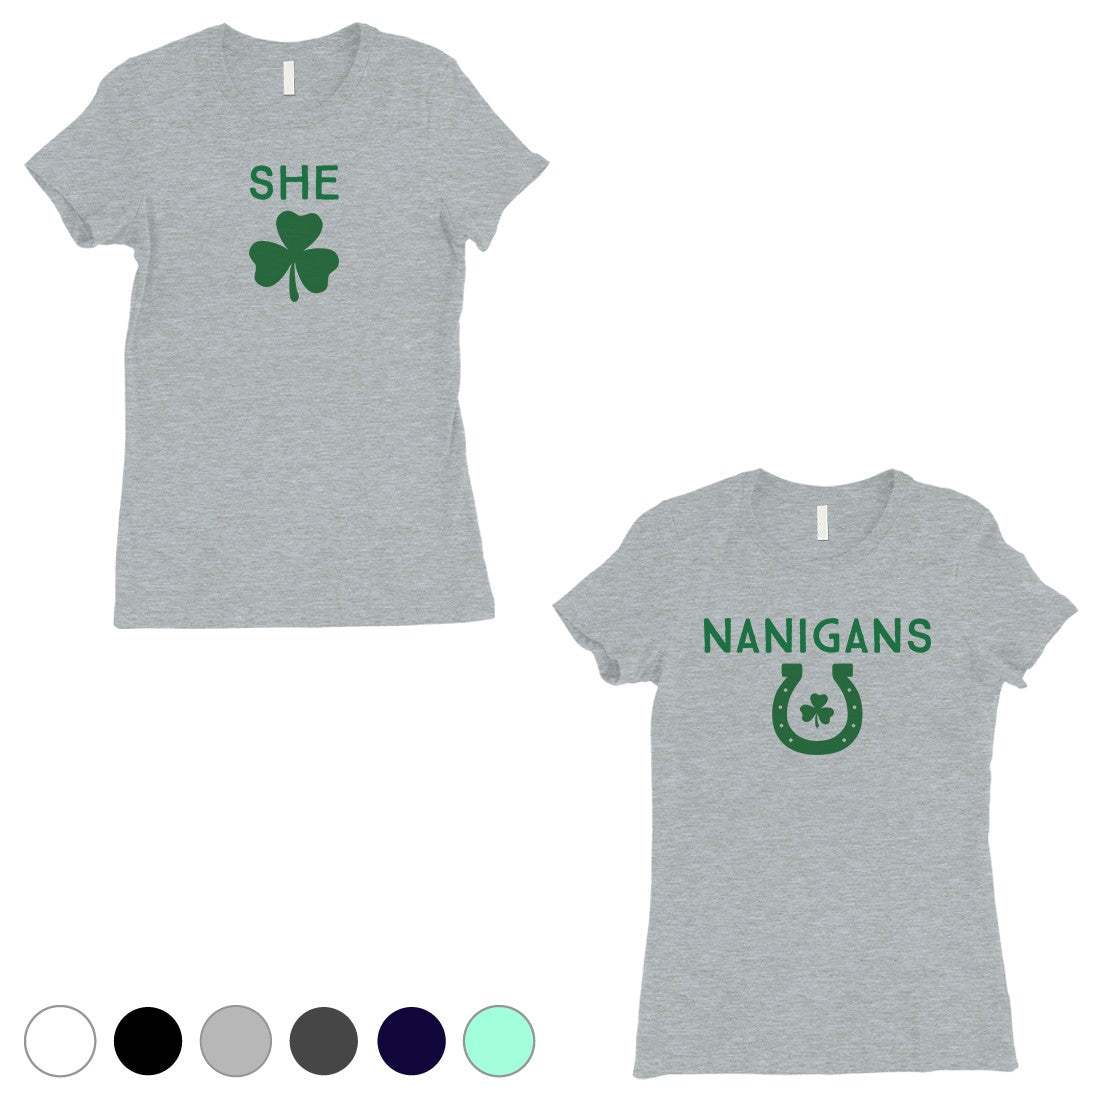 afe0839f1 St. Patrick's DaySt. Patrick's Day Gifts - Unique Gift Ideas For ...